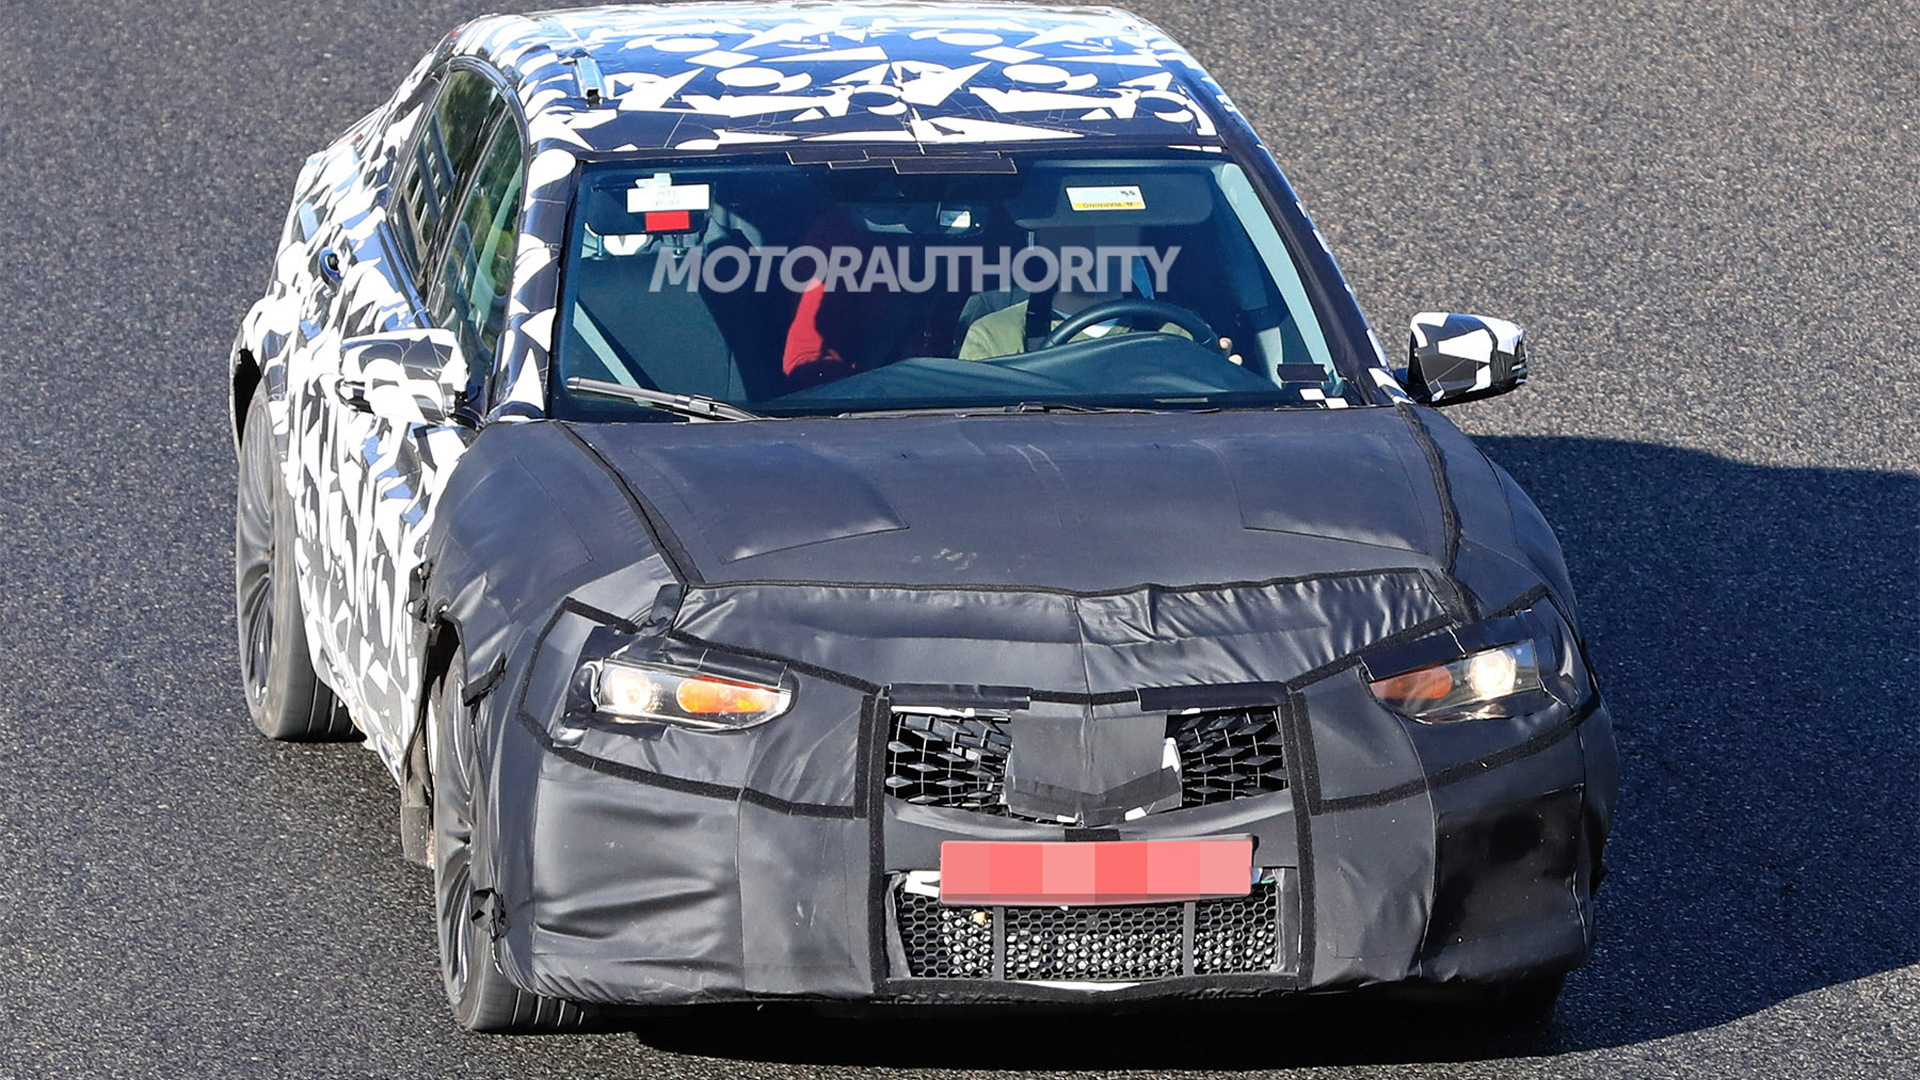 2020 Acura MDX Type S Spy Shots And Release Date Info >> Car Spy Shots News Reviews And Insights Motor Authority